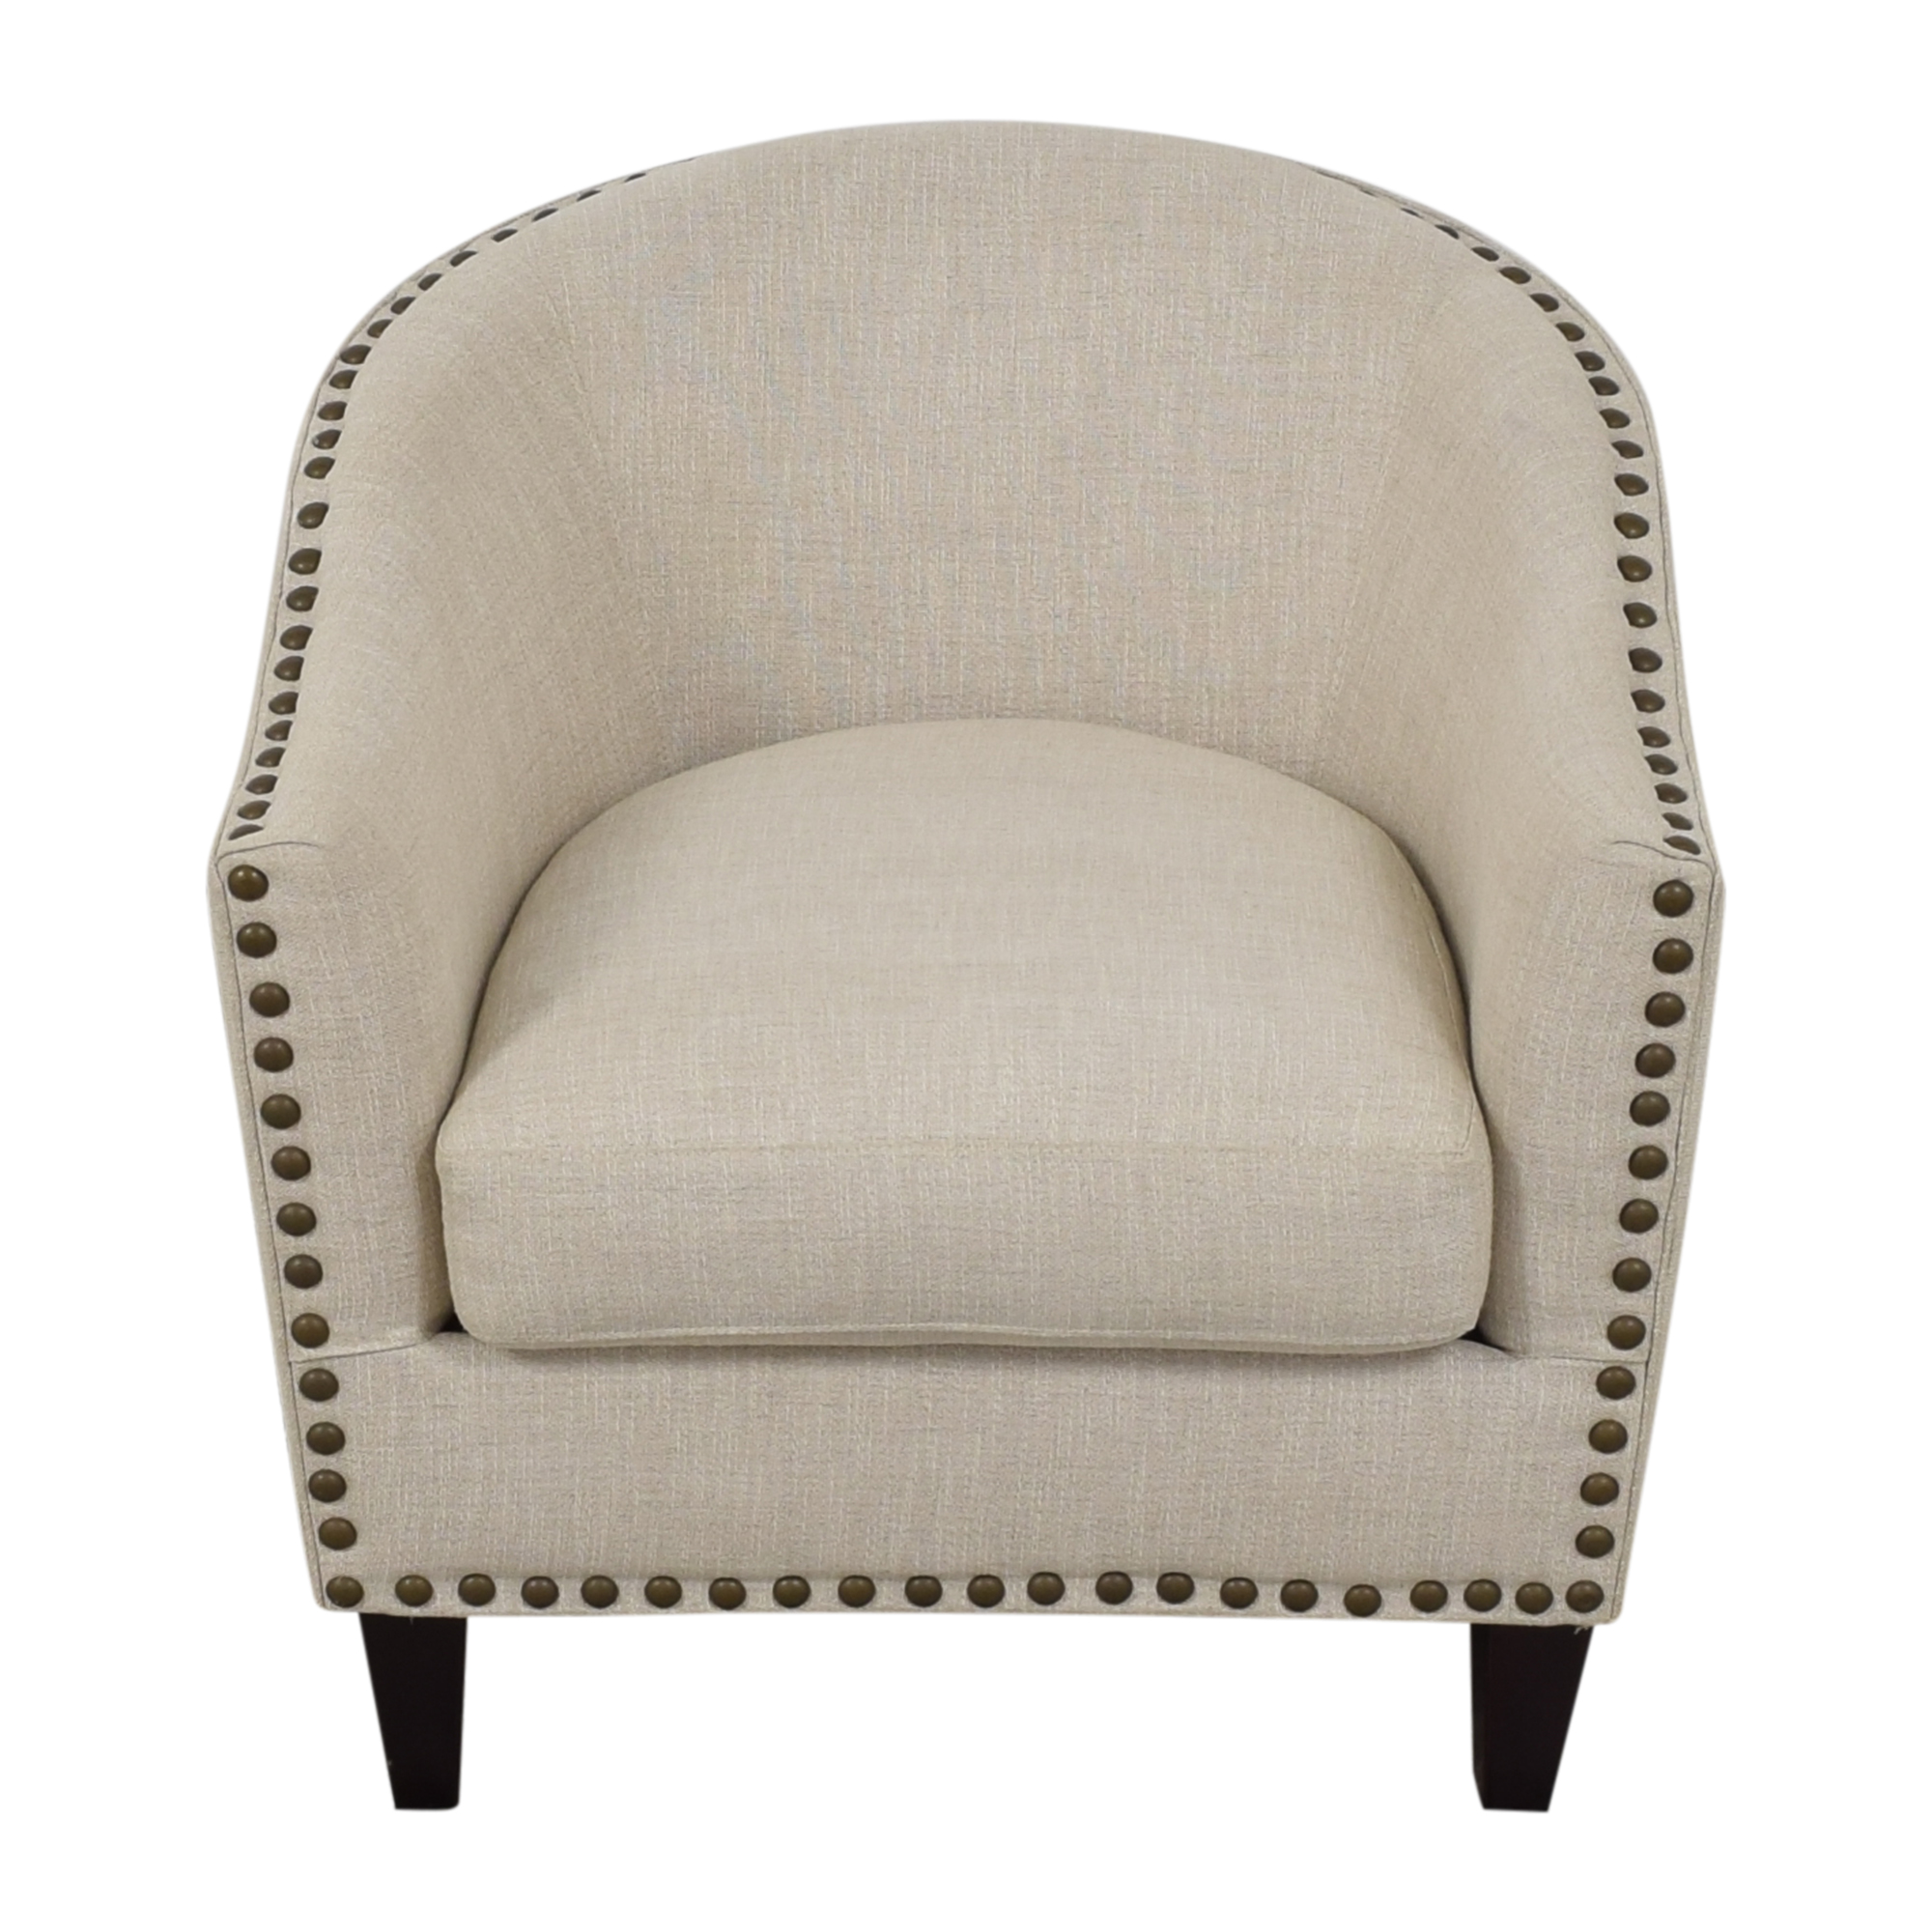 Pottery Barn Pottery Barn Harlow Upholstered Armchair discount